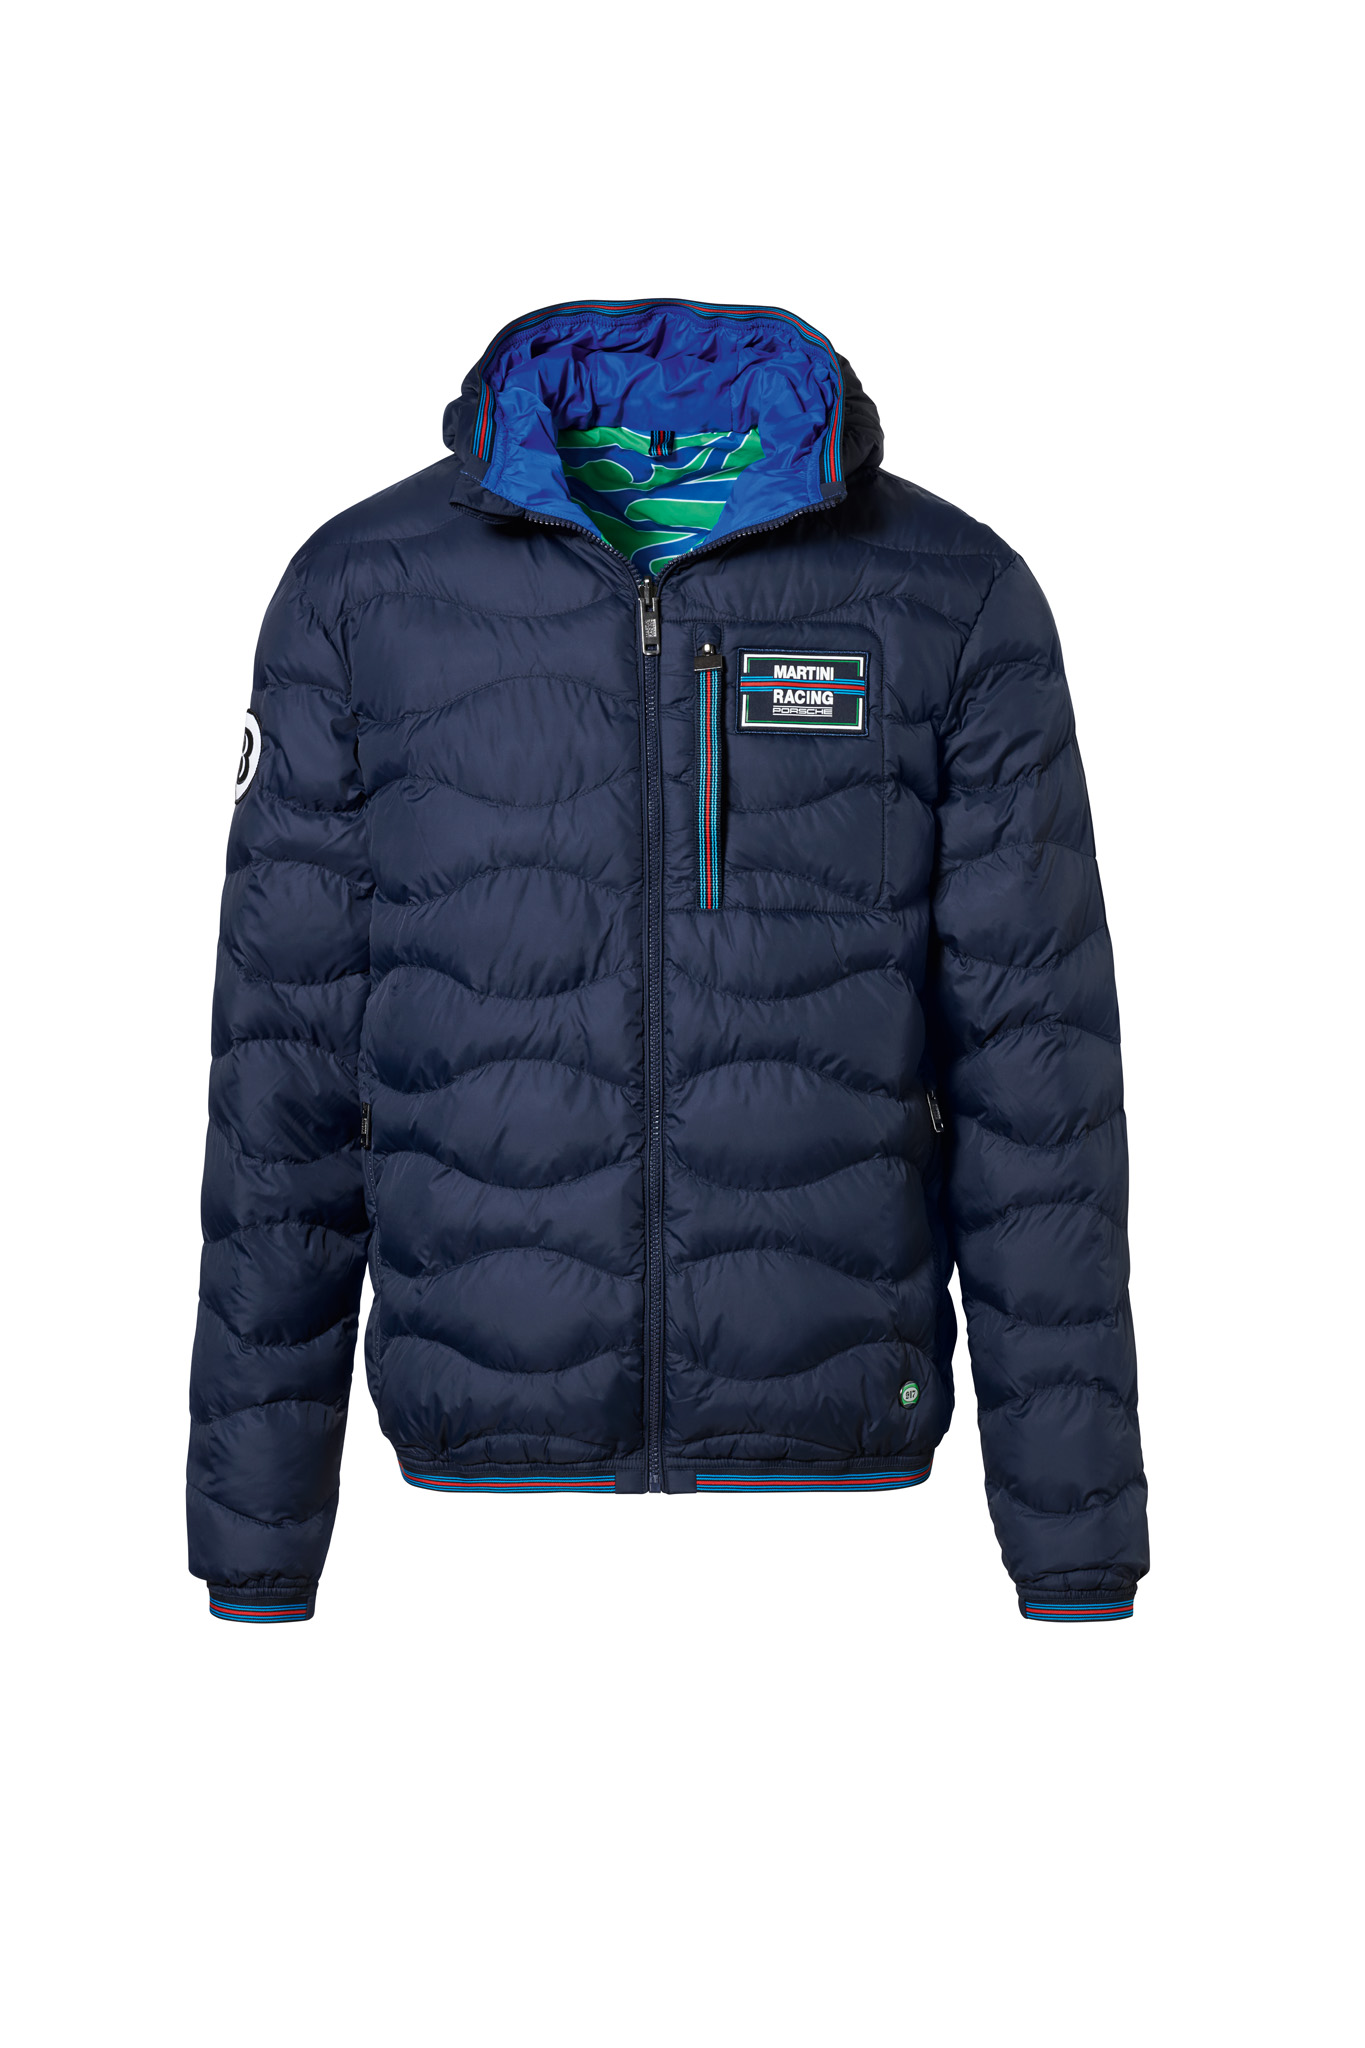 MARTINI RACING Collection, Men's Hippie Puffer Jacket